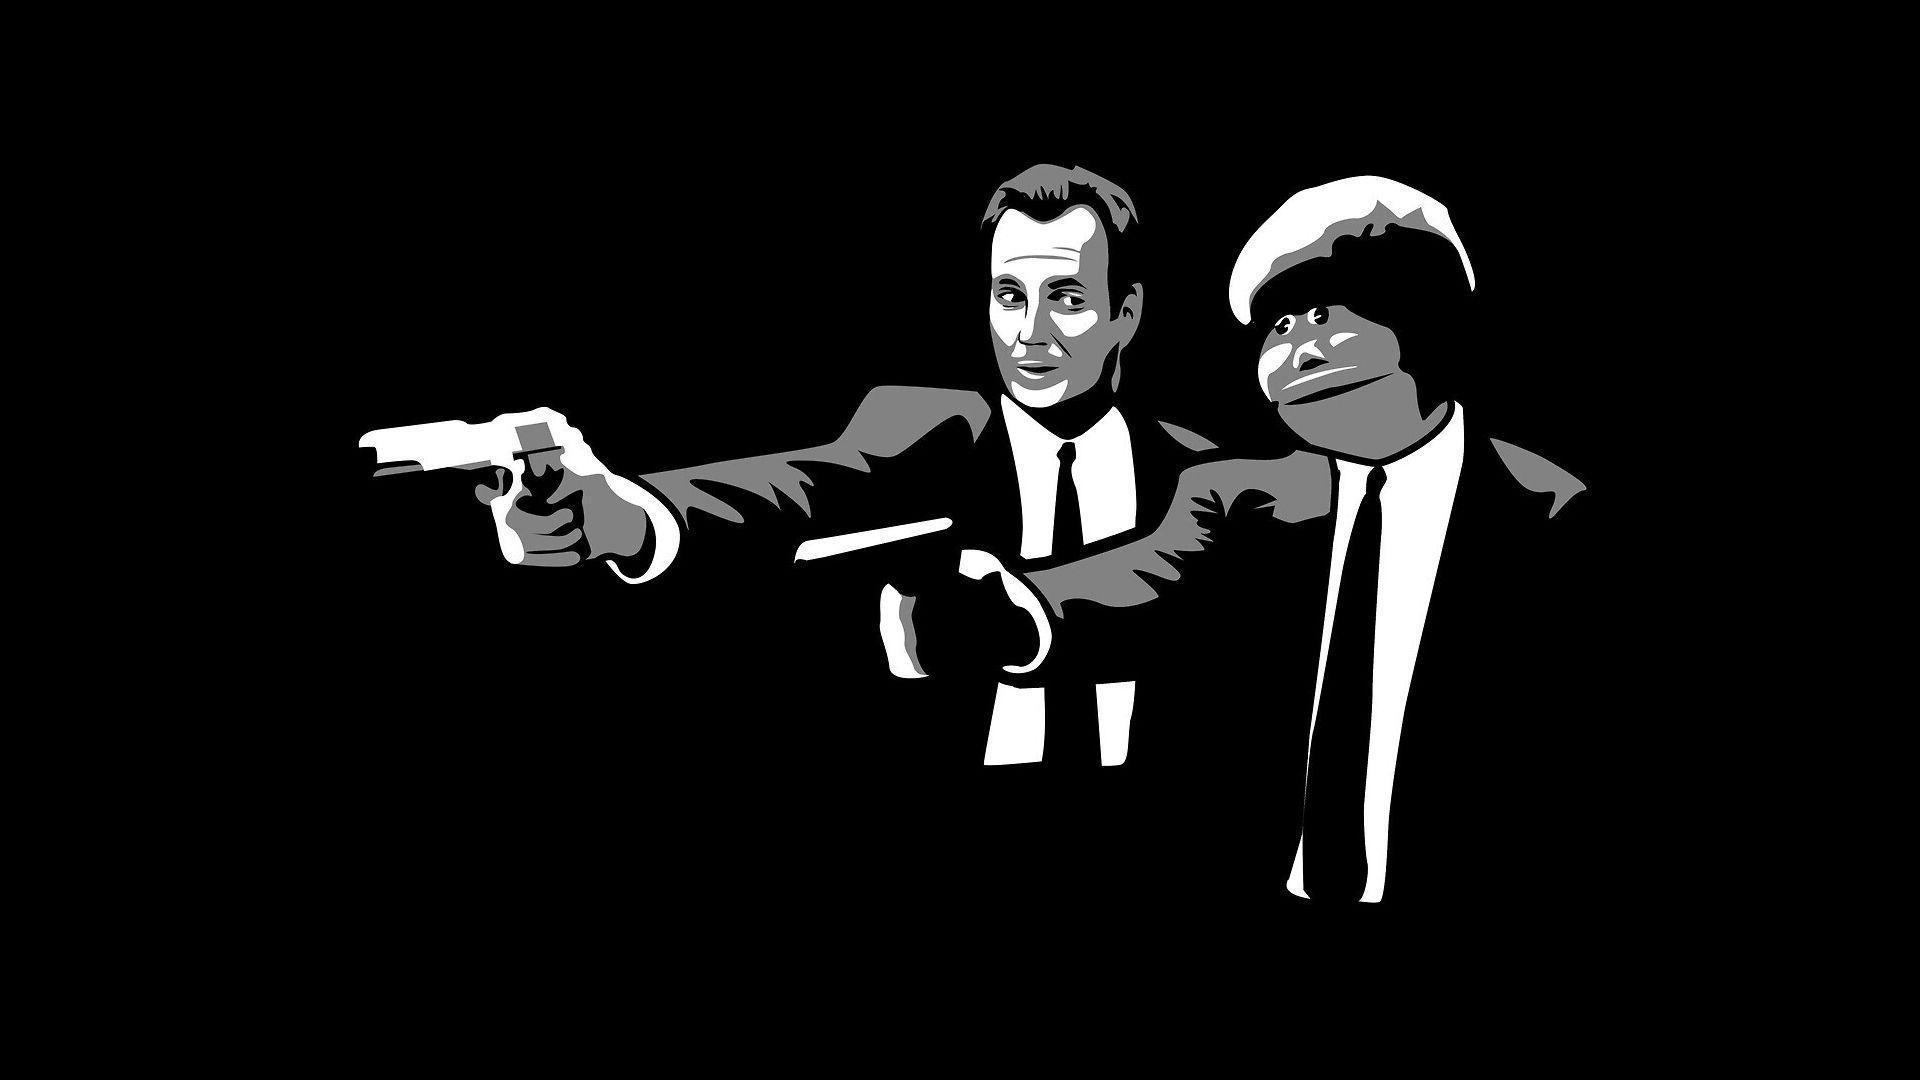 Pulp fiction 1080p yify subtitles new crime drama movies 2013 here you can find subtitles for all your divx movies pulp fiction 1994 1080p brrip x264 yify uploaded by alexs on 271014 1106am year 1994 ccuart Image collections